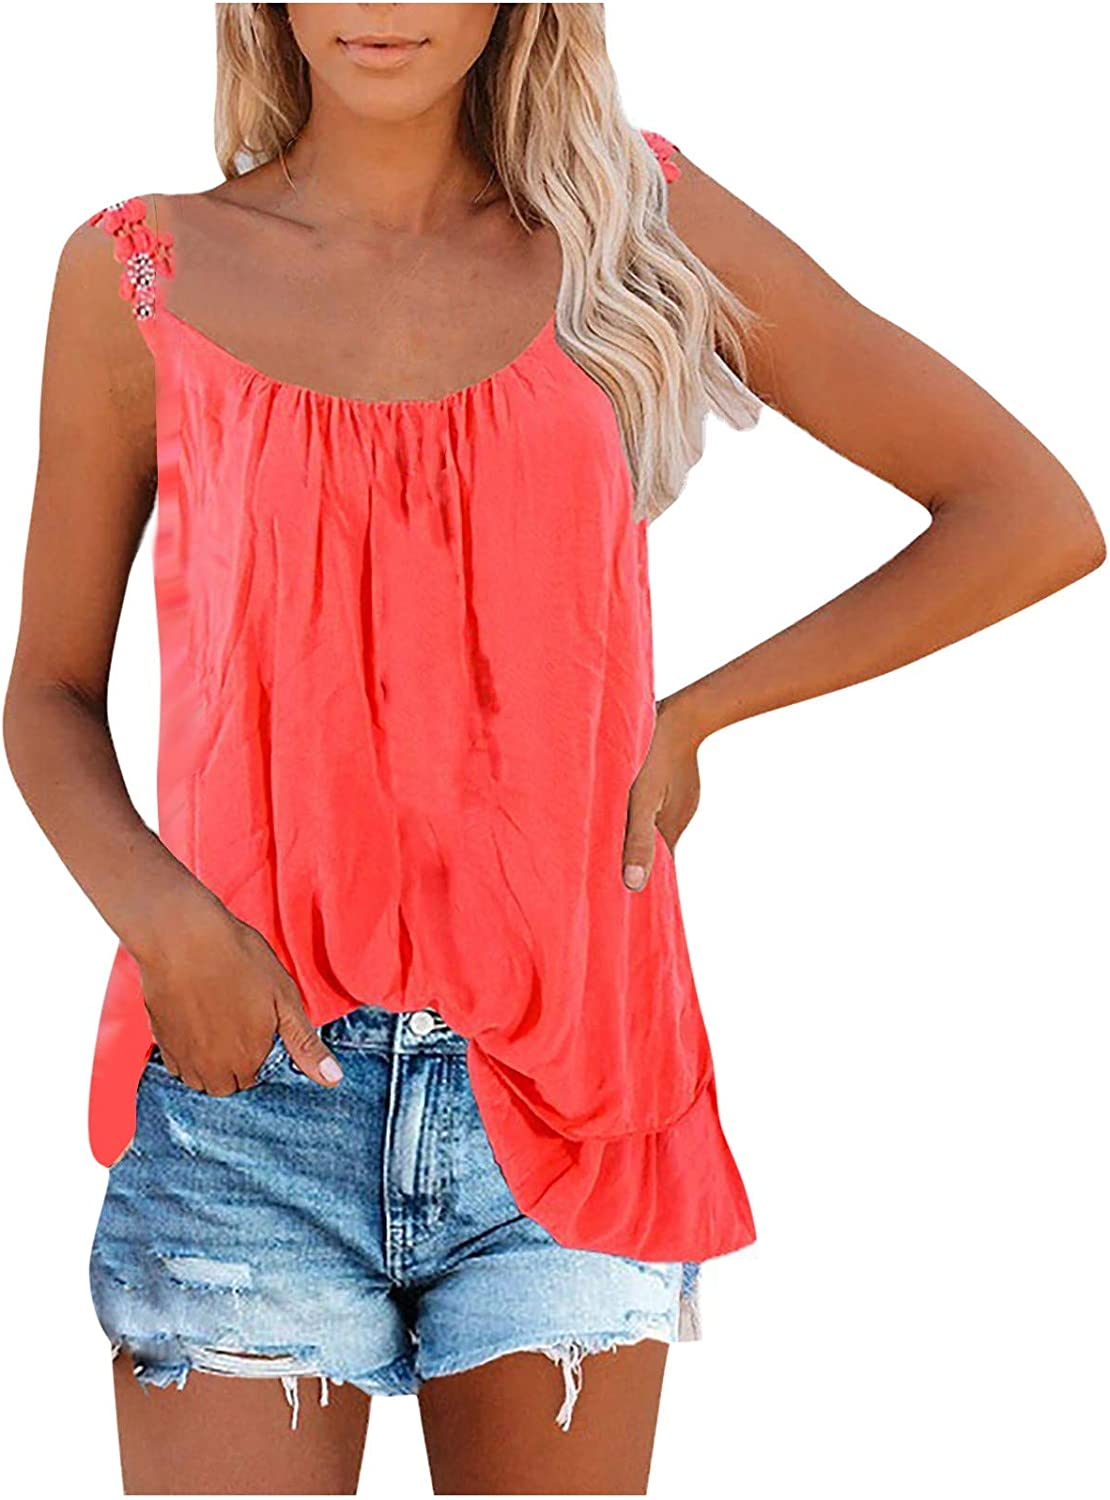 Free shipping New Fashion Women Online limited product Casual Loose Solid Lace Sex Slim O-Neck Tank Sling